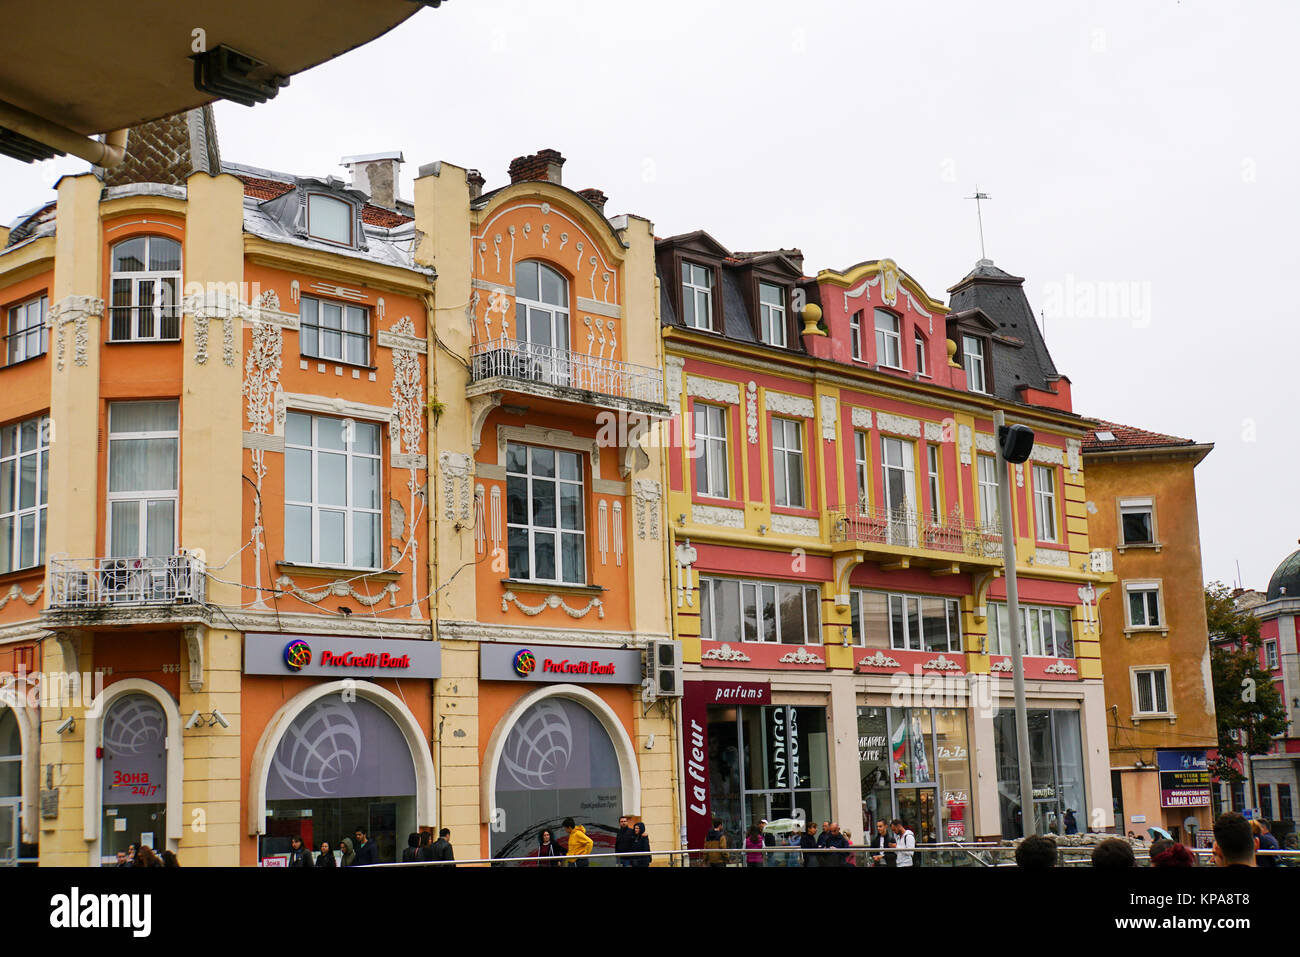 Facade of a building, Plovdiv, Bulgaria - Stock Image